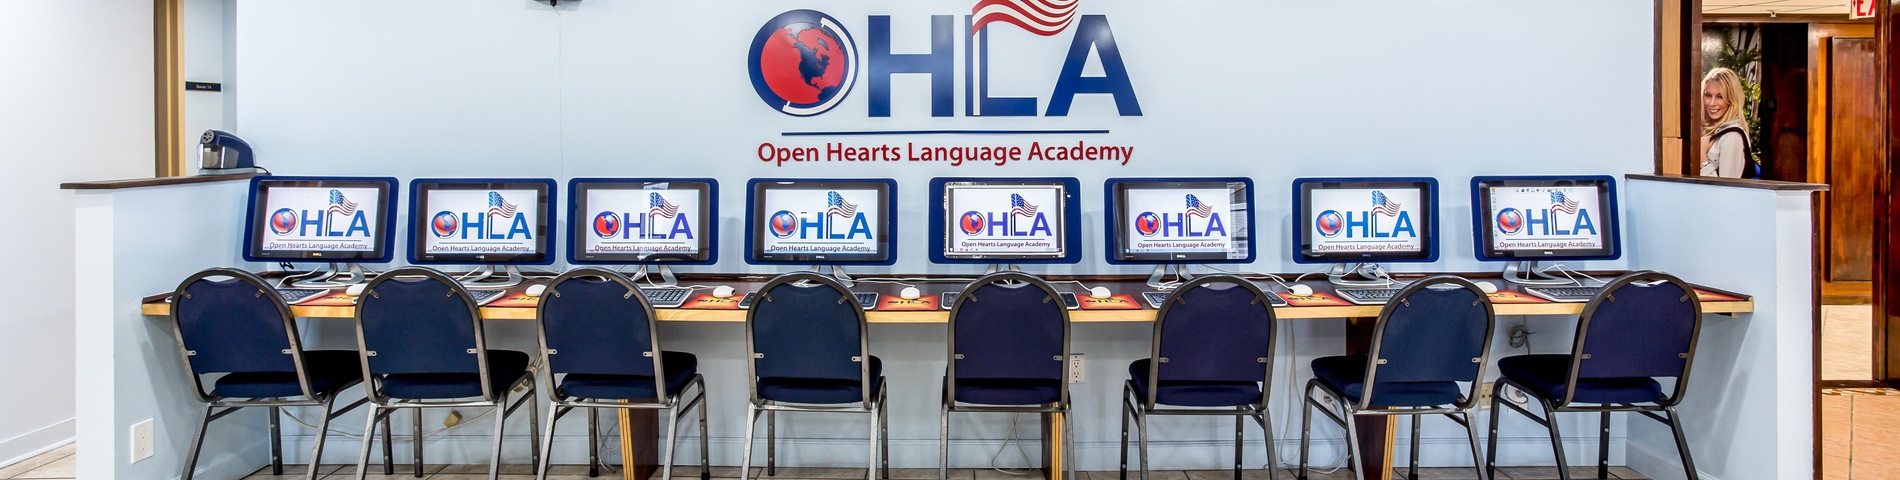 Open Hearts Language Academy 사진 4